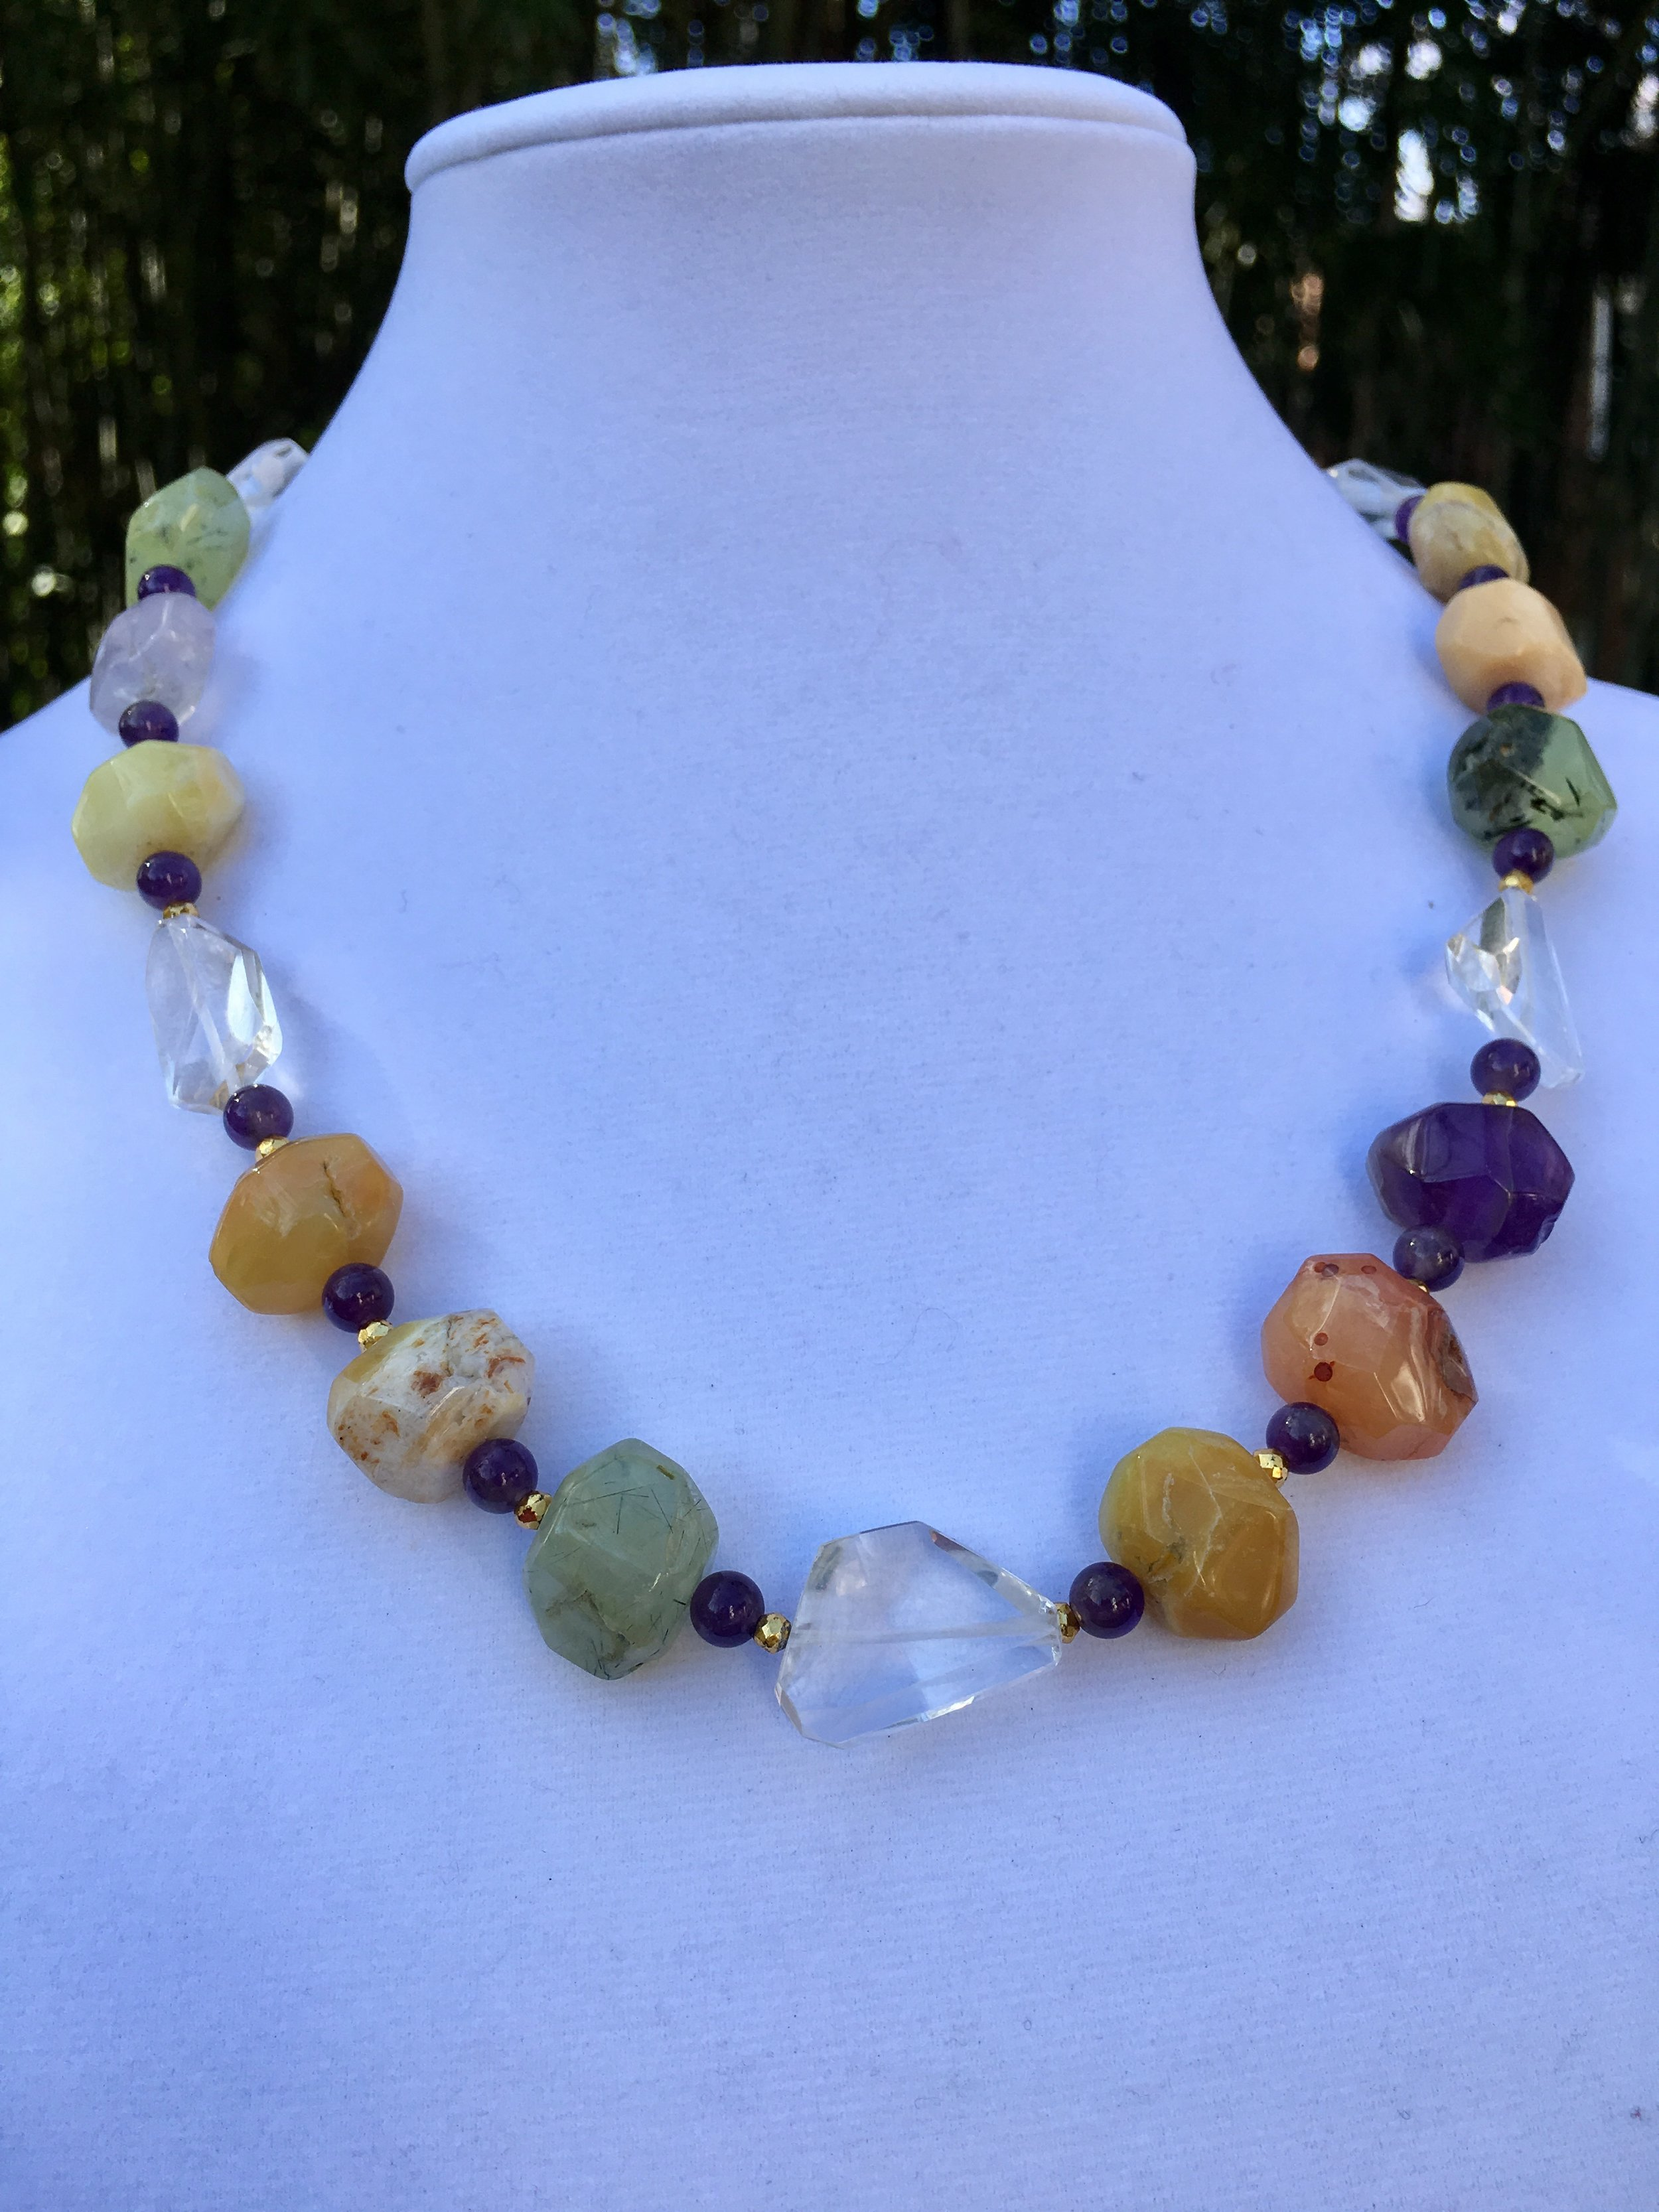 multi semiprecious stone NECKLACE with Faceted clear quartz & amethyst  Multi stone necklace of chunky faceted 15 x 29 mm beads including amethyst, carnelian, prehnite, agate and yellow jade. Round amethyst beads, faceted clear Quartz, gold filled clasp. 22 in. $225